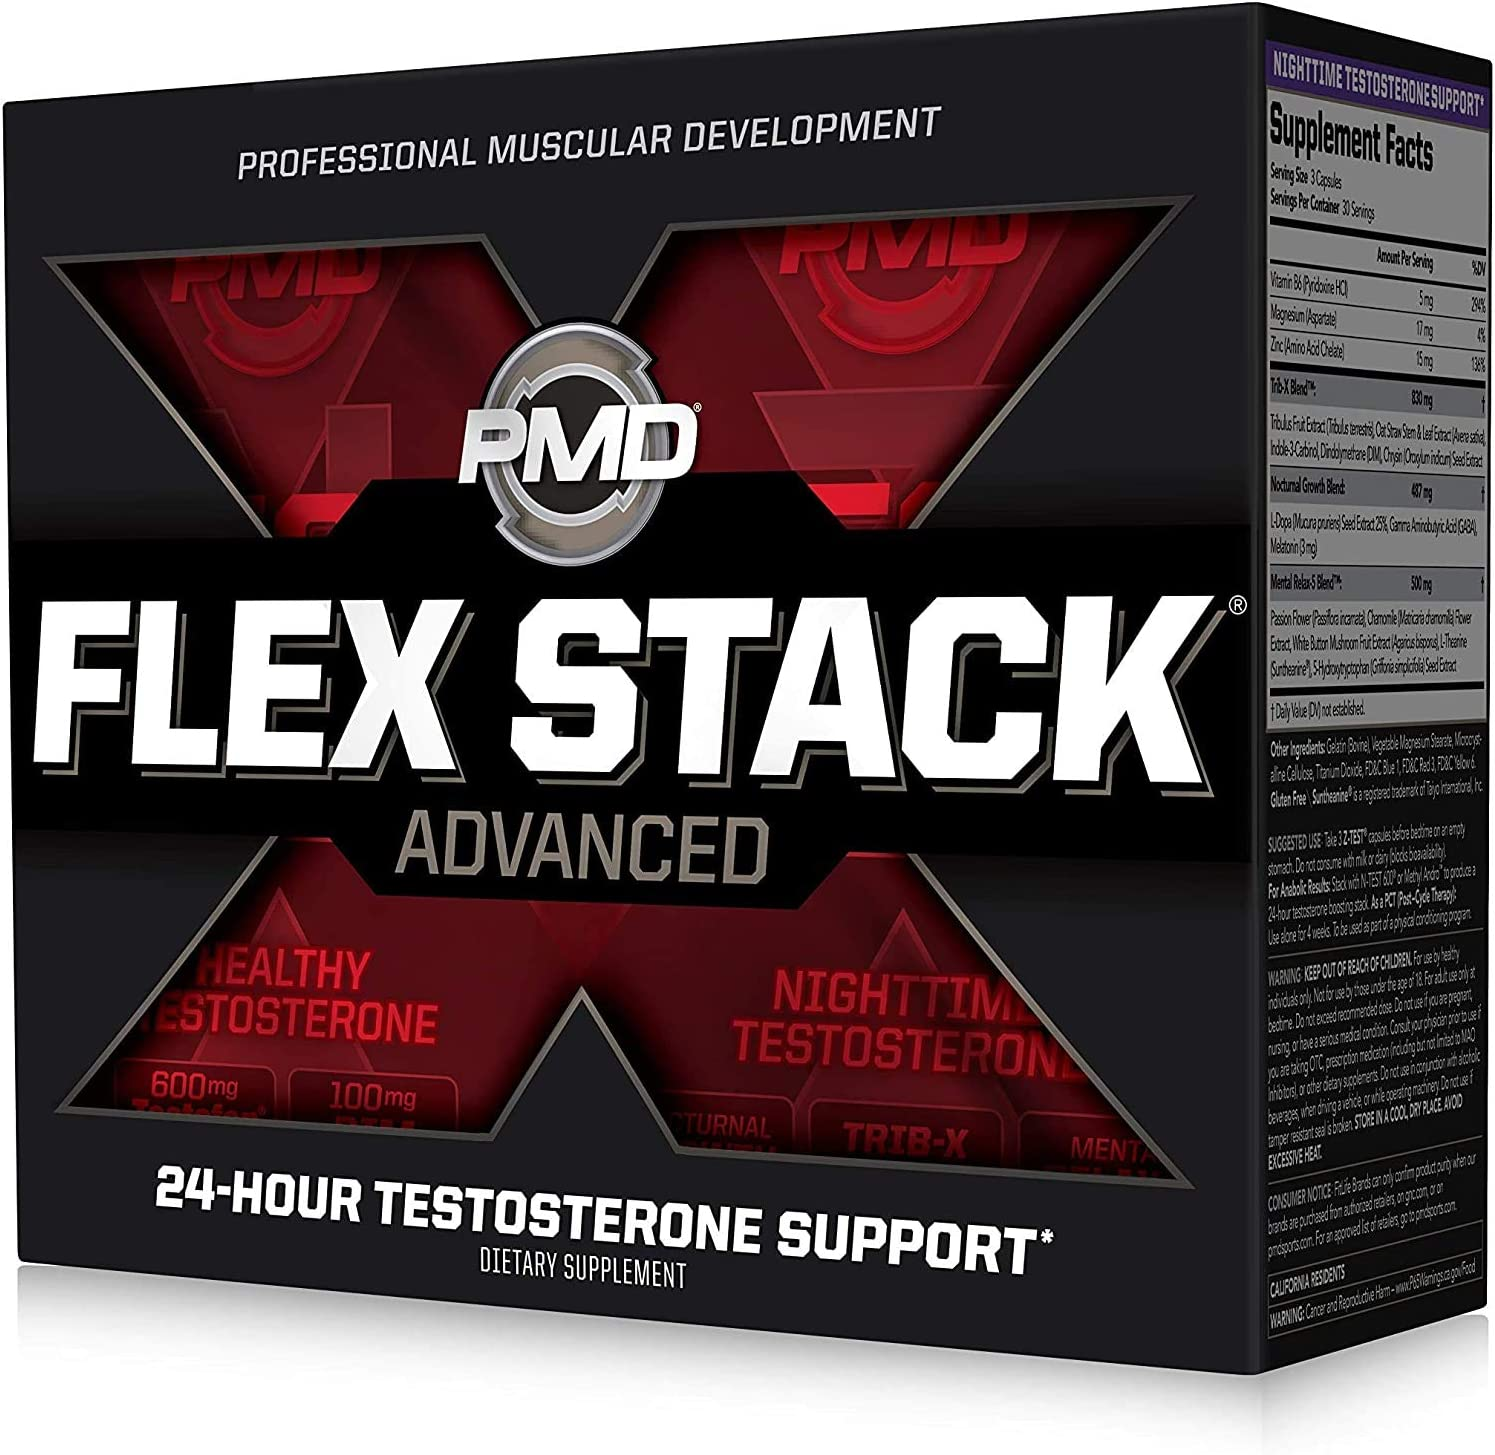 FA FITNESS AUTHORITY TEST STACK 120 caps Testosterone Libido Xtreme Booster